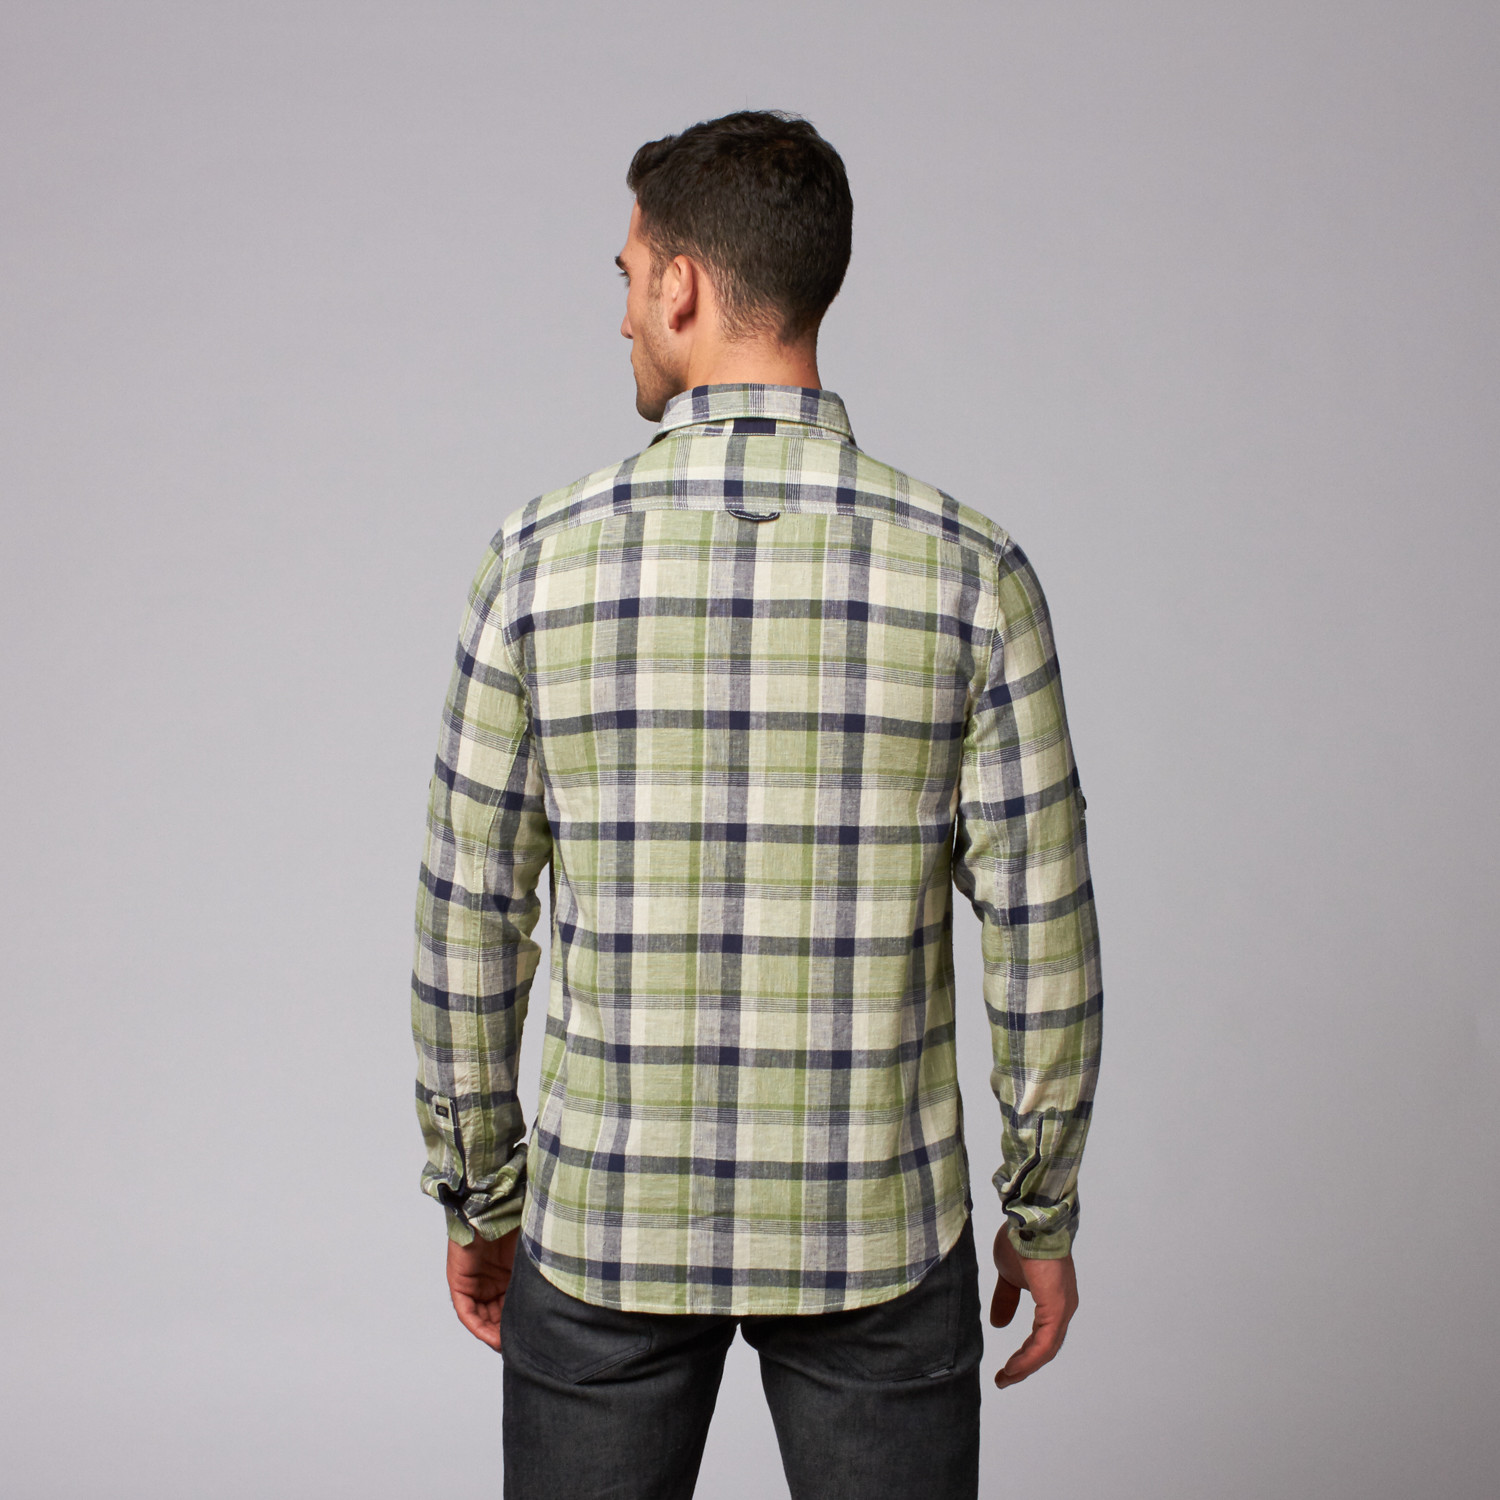 Sault Button Down Shirt Green Plaid S Buffalo